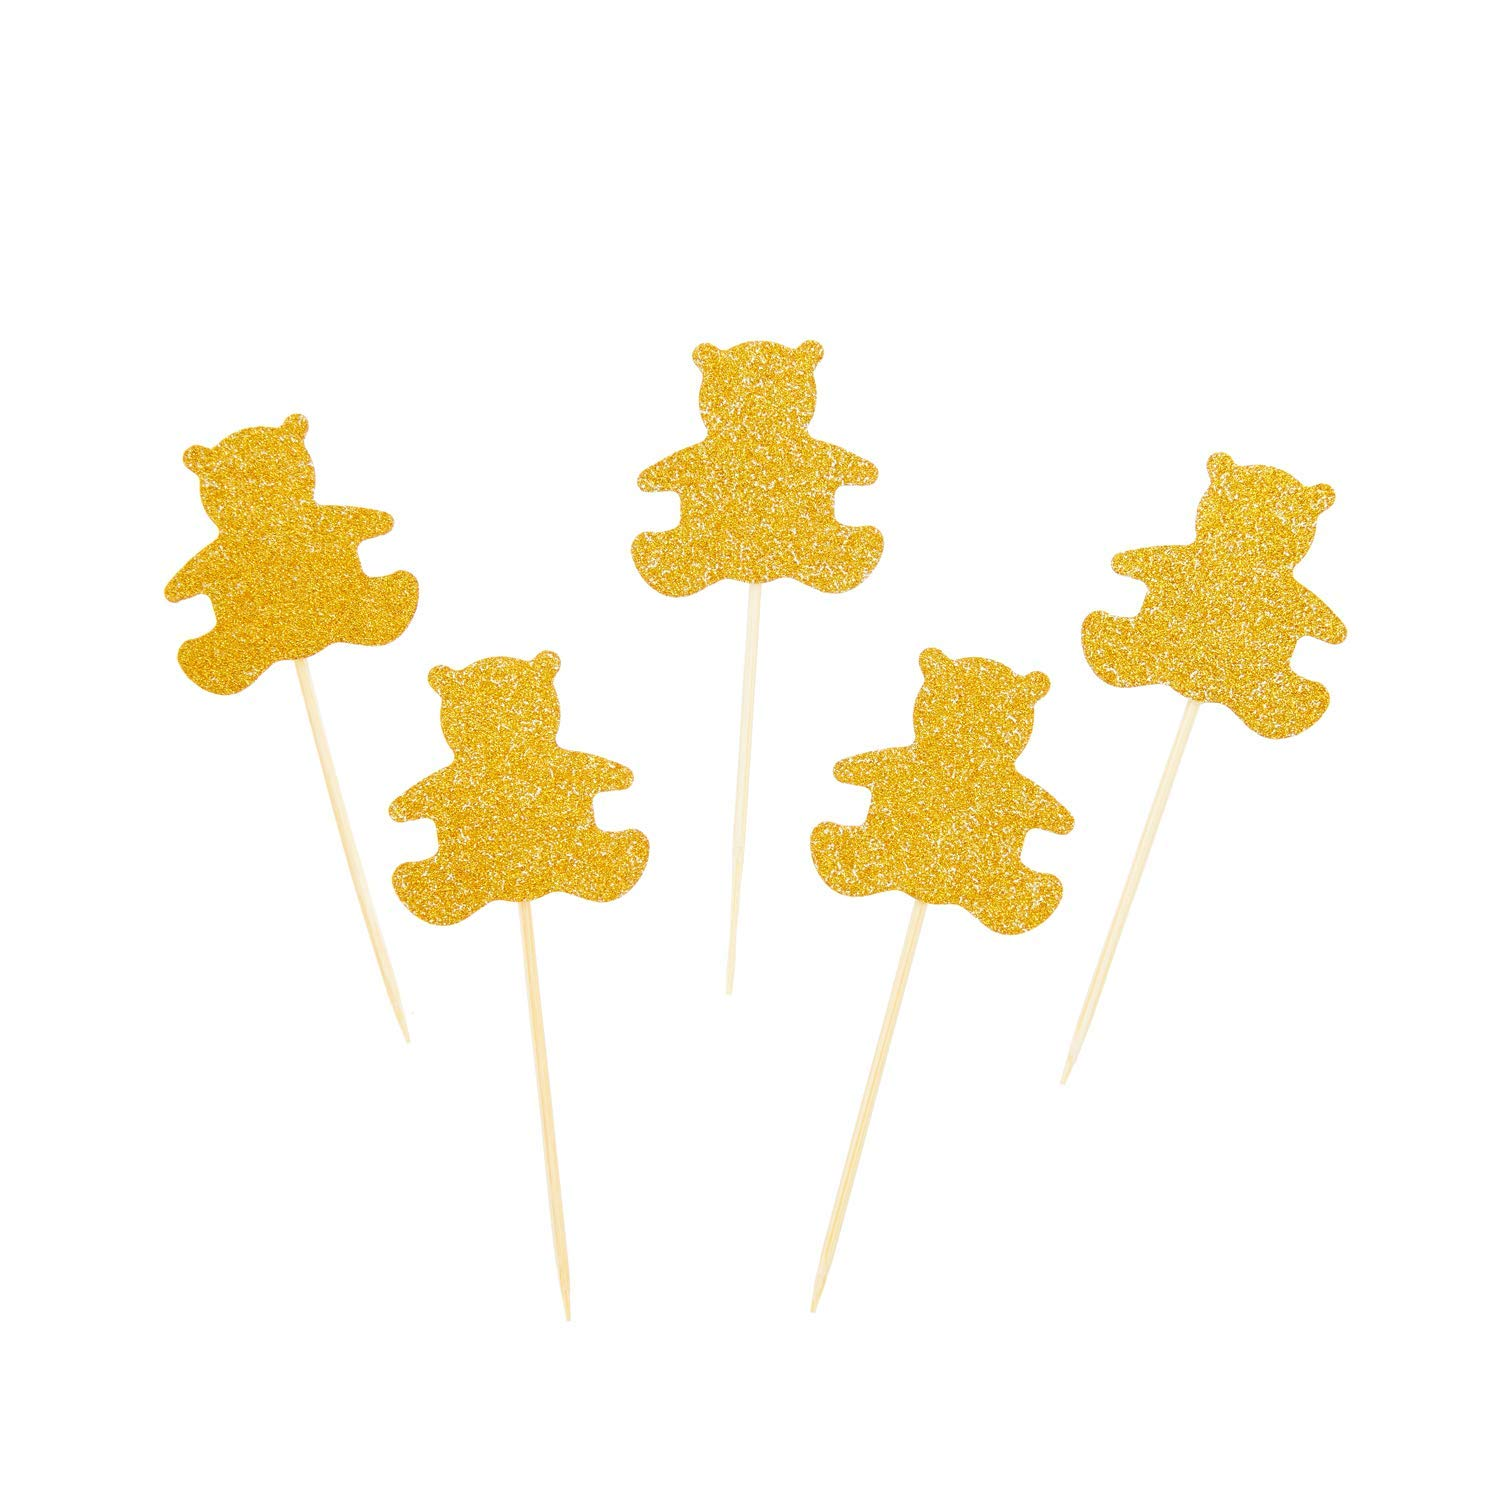 24 Pcs of Glitter Gold Bear Cupcake Toppers for Kids Babies Birthday Party Baby Shower Party Brial Shower Wedding Cake Decorations